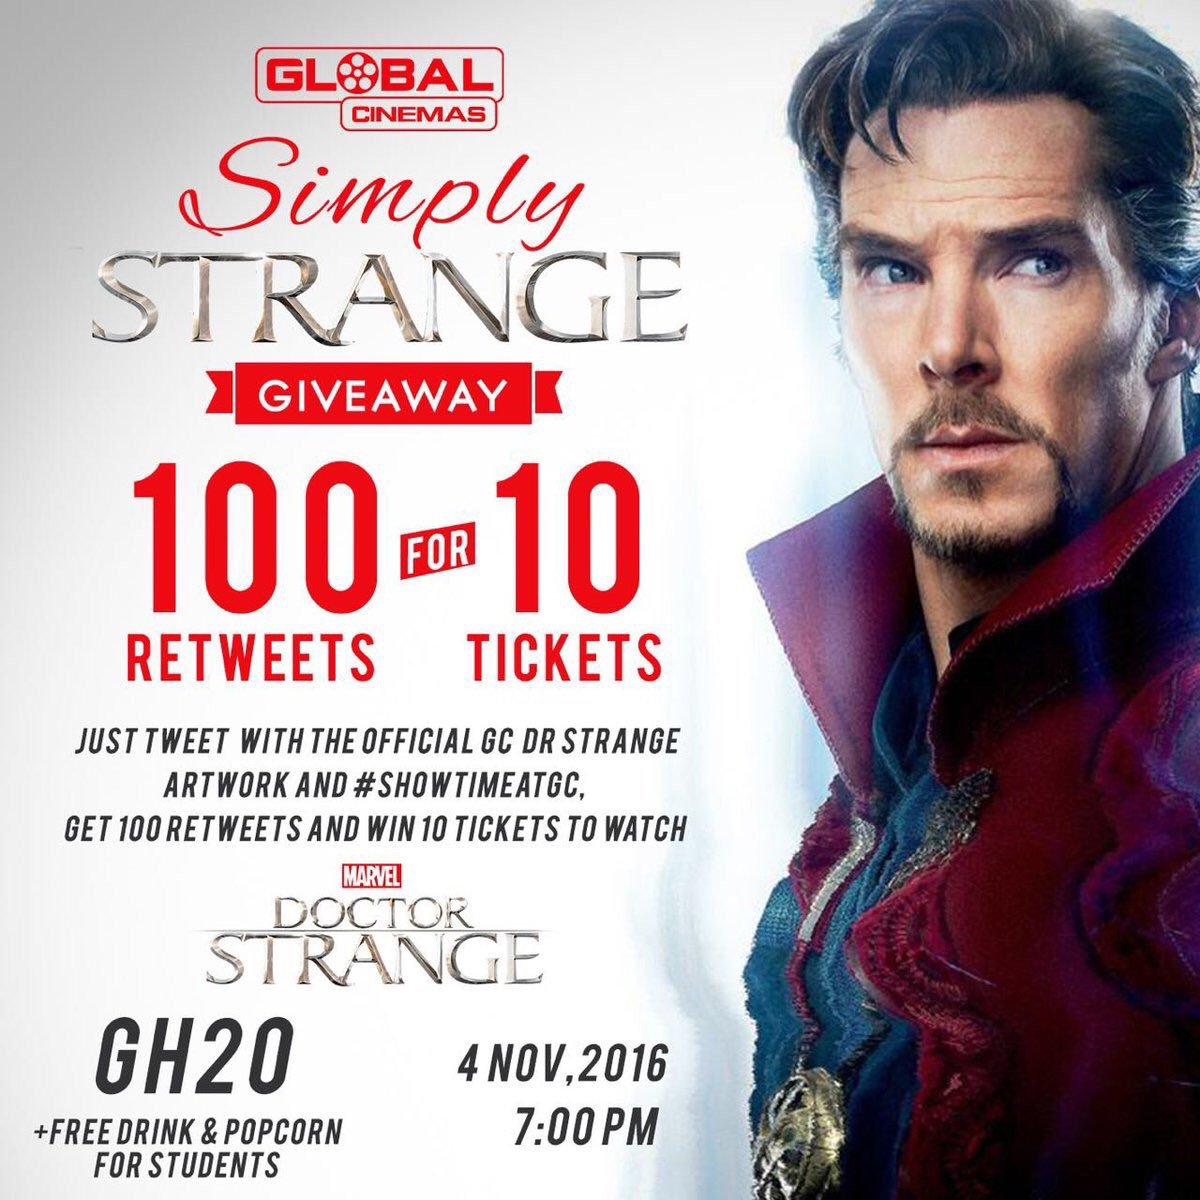 So, I have to watch this movie Dr Strange, but I need 100 RTs.. Let's do this! #ShowTimeAtGC #DrStrange https://t.co/3LwzGlNAa8